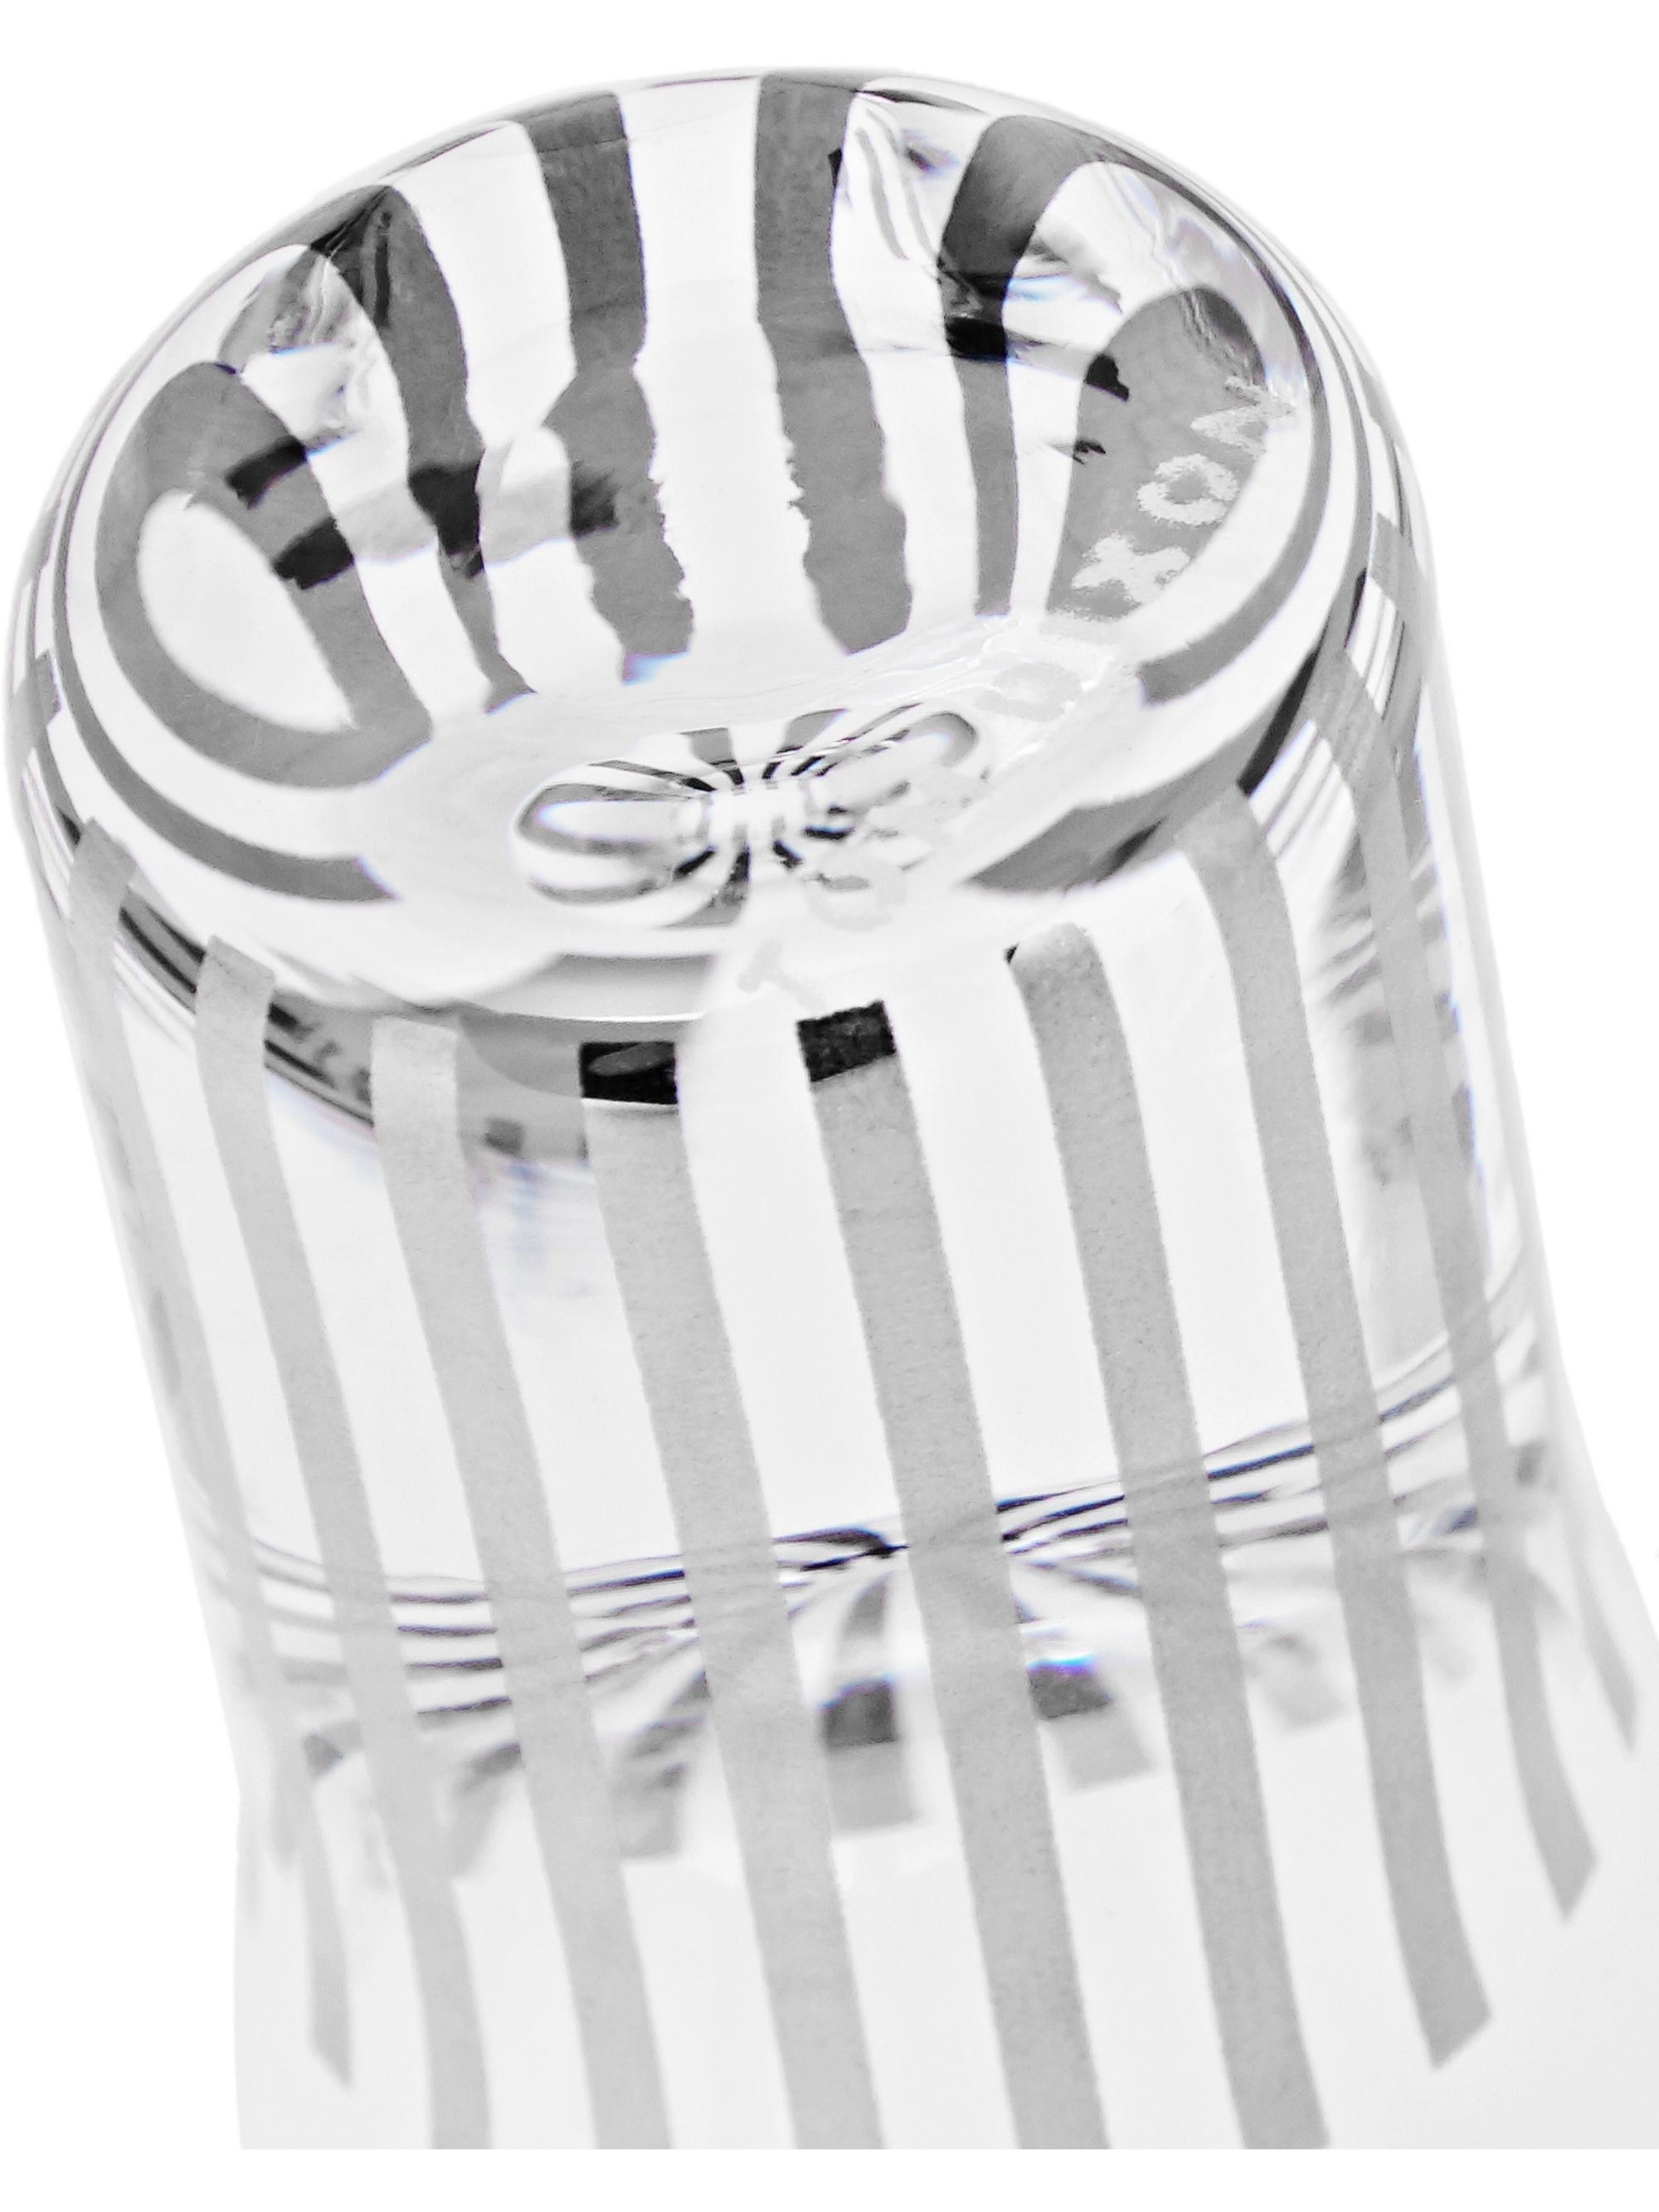 Tom Dixon Tank Set of Four Striped Shot Glasses